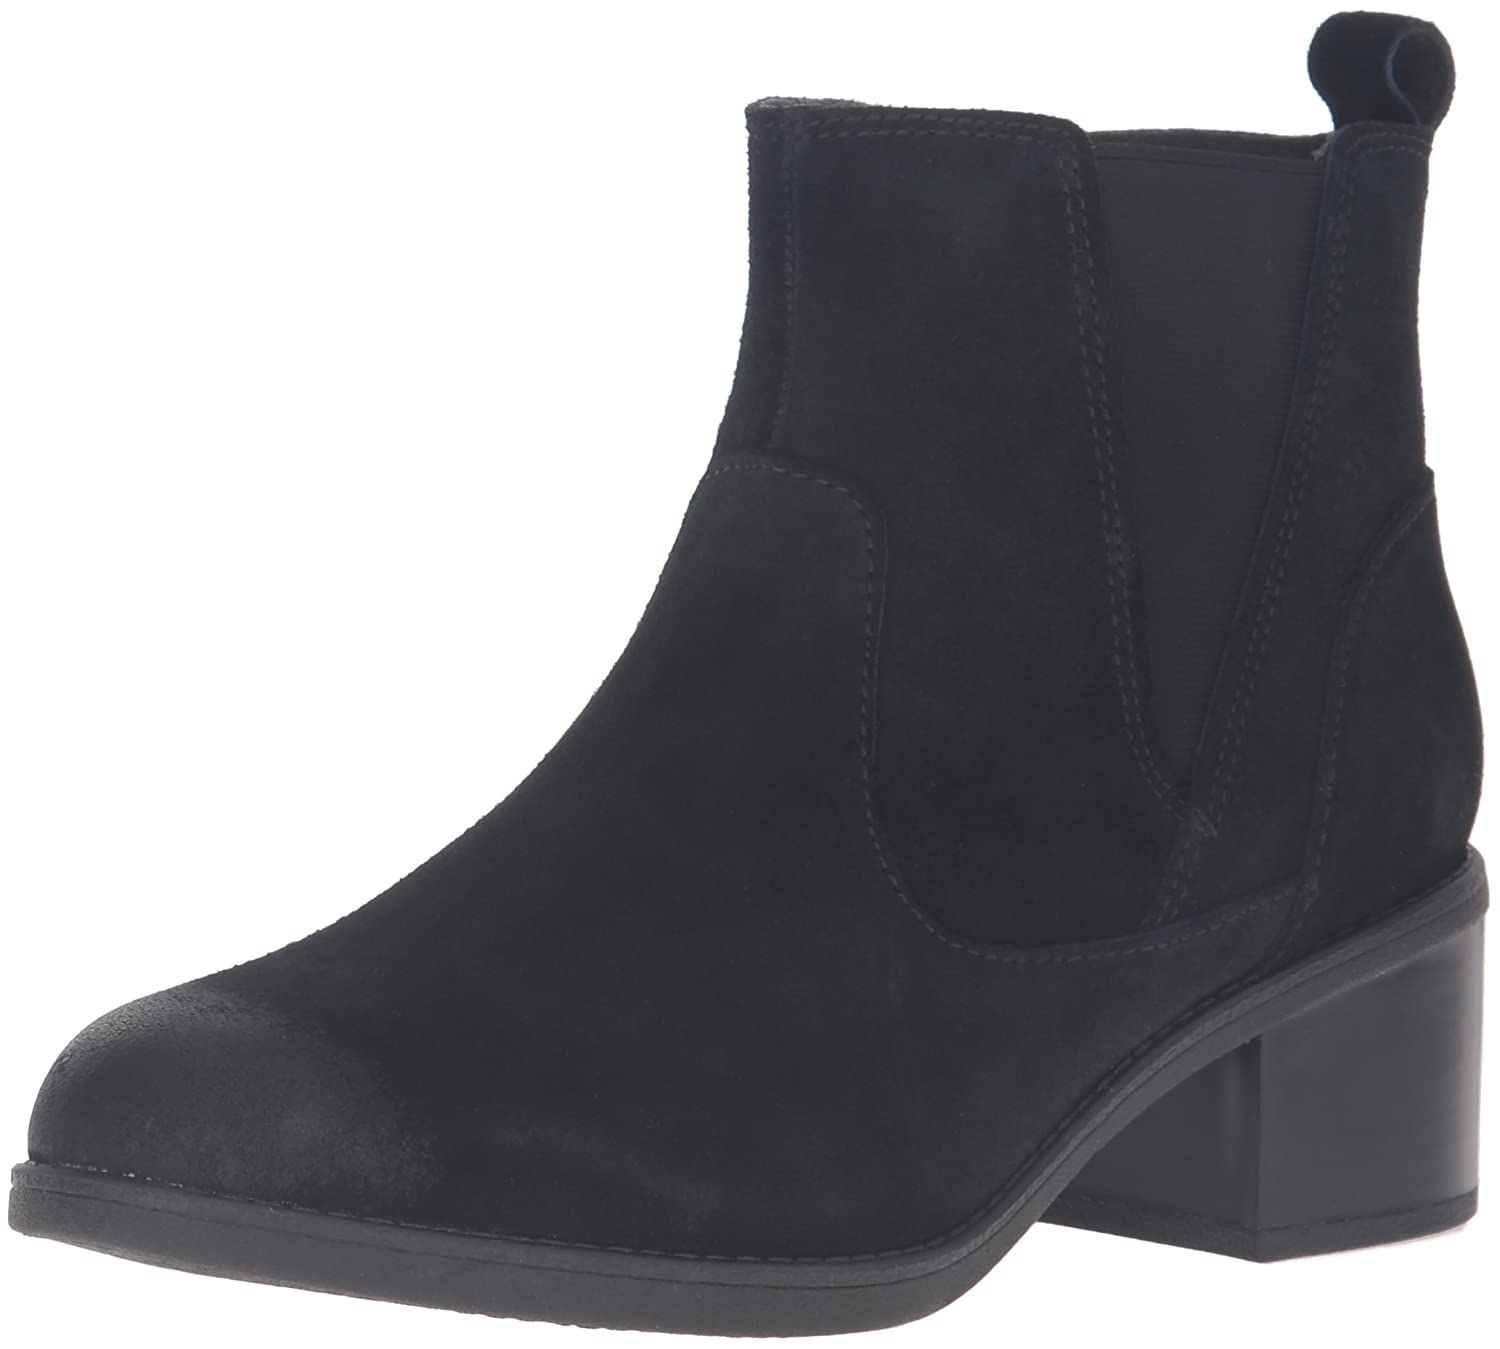 CLARKS Women's Nevella Bell Boot B0198WJS1C 6.5 B(M) US|Black Suede